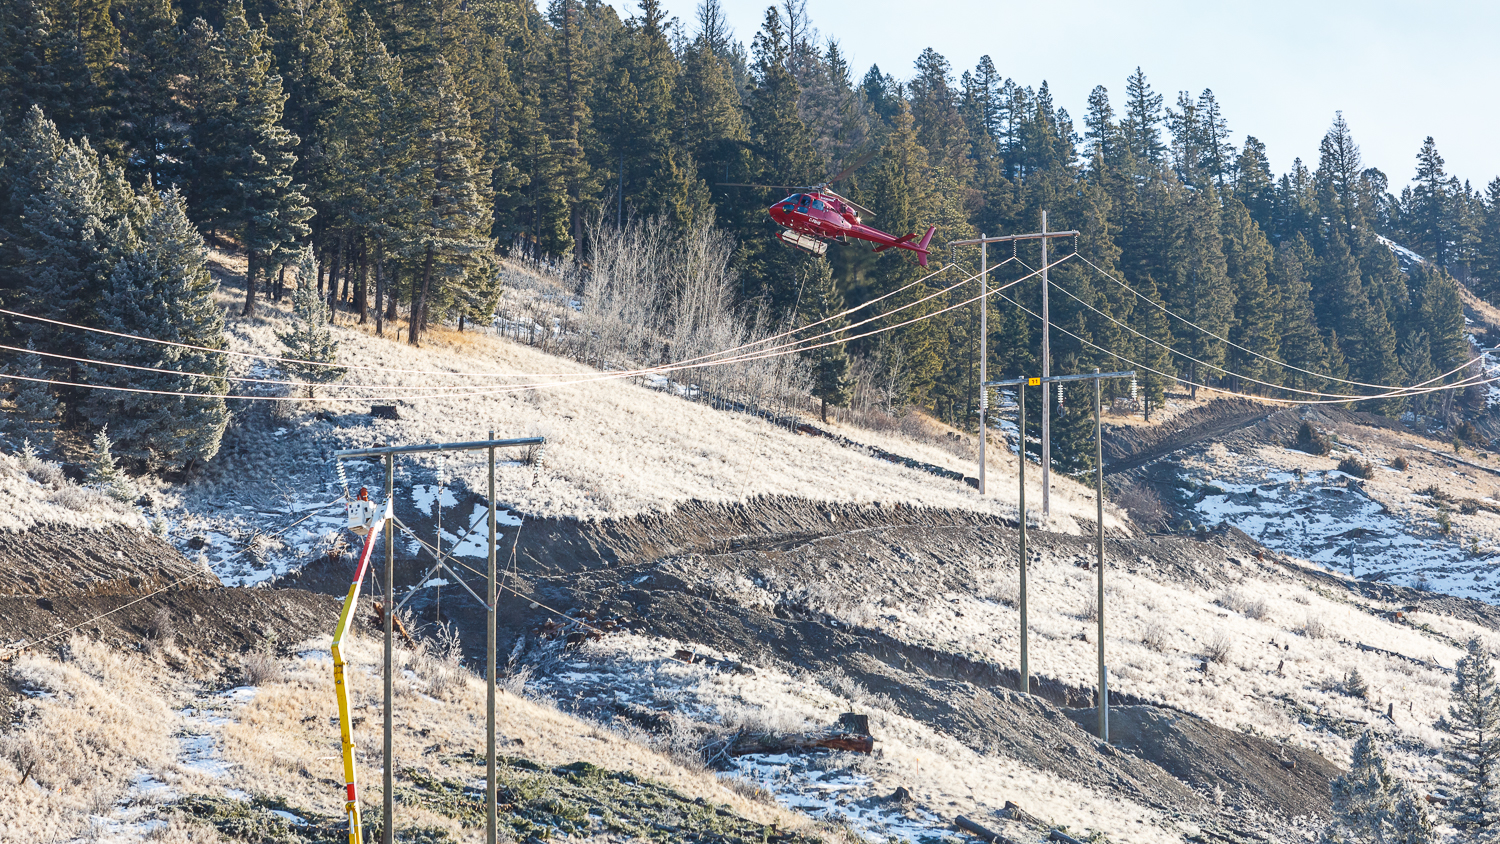 Some sections proved more difficult, as the helicopter had to get very close to the live power lines. Weather conditions were perfect.